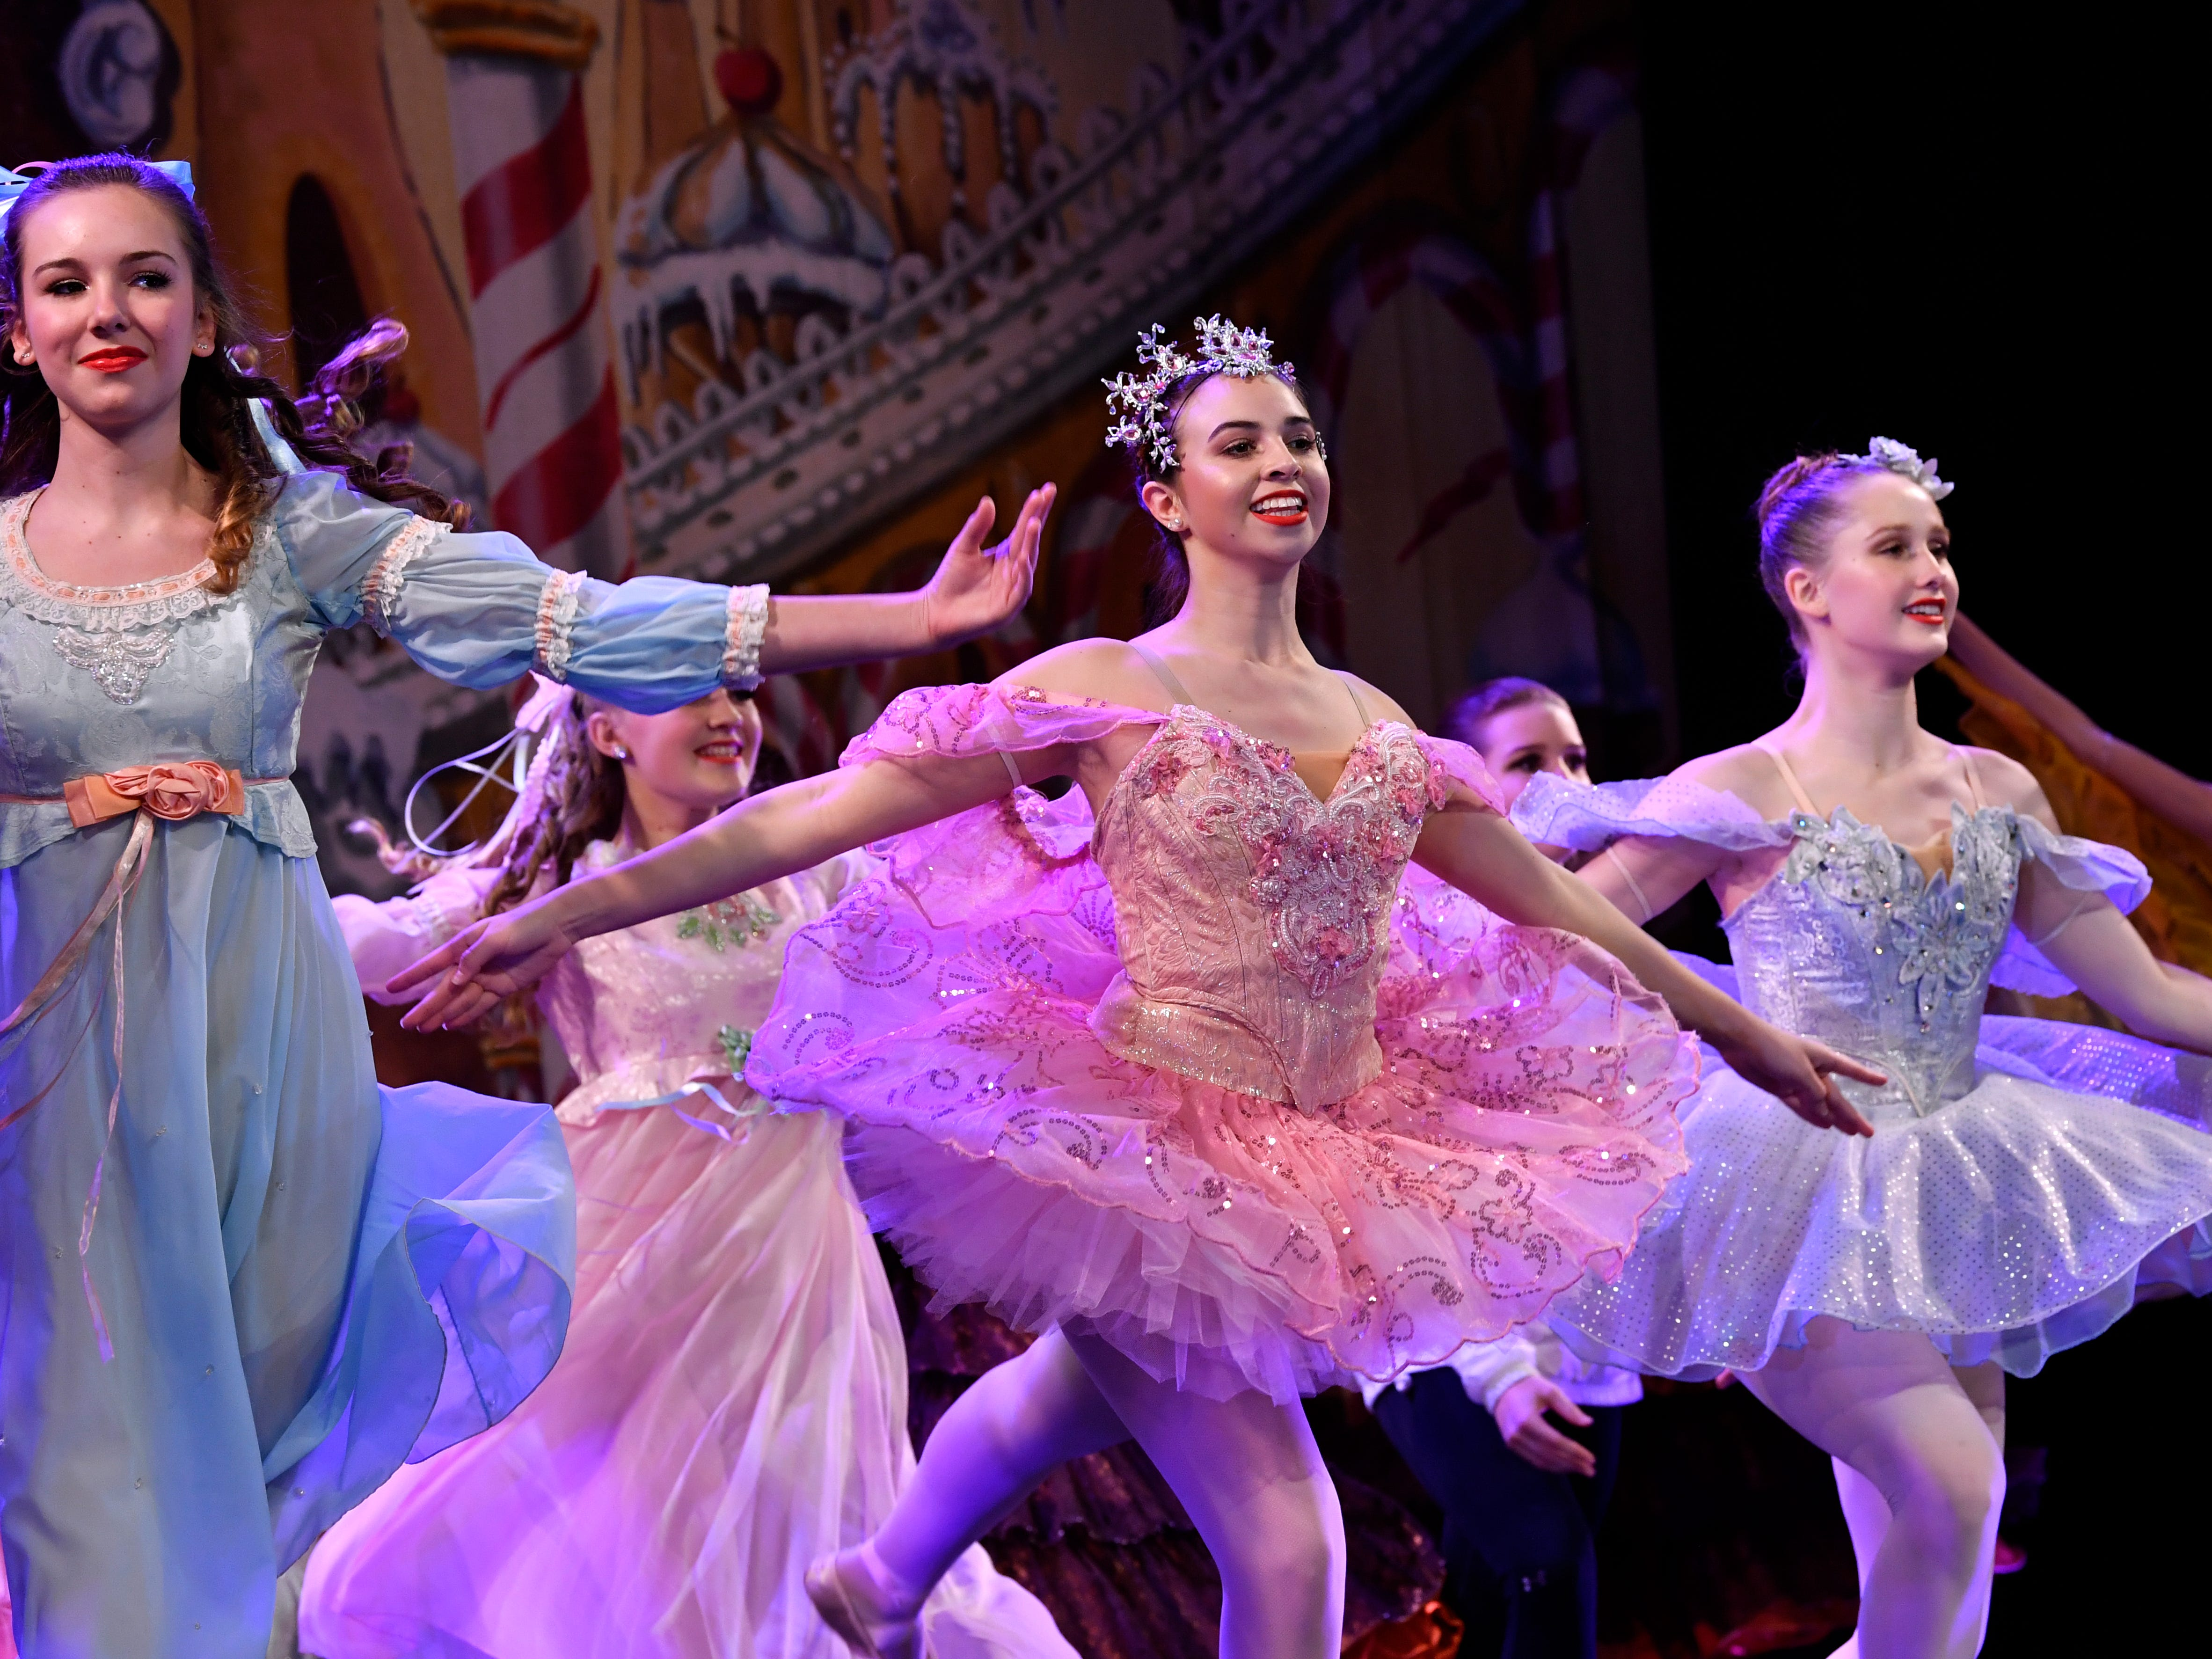 Lily Etter, Dalli Albus and Lydia Longley dance in the Land of the Sweets scene of The Nutcracker during rehearsal Wednesday Nov. 14, 2018. This was the 31st year for the Abilene Ballet Theatre production, held at the Paramount Theatre.